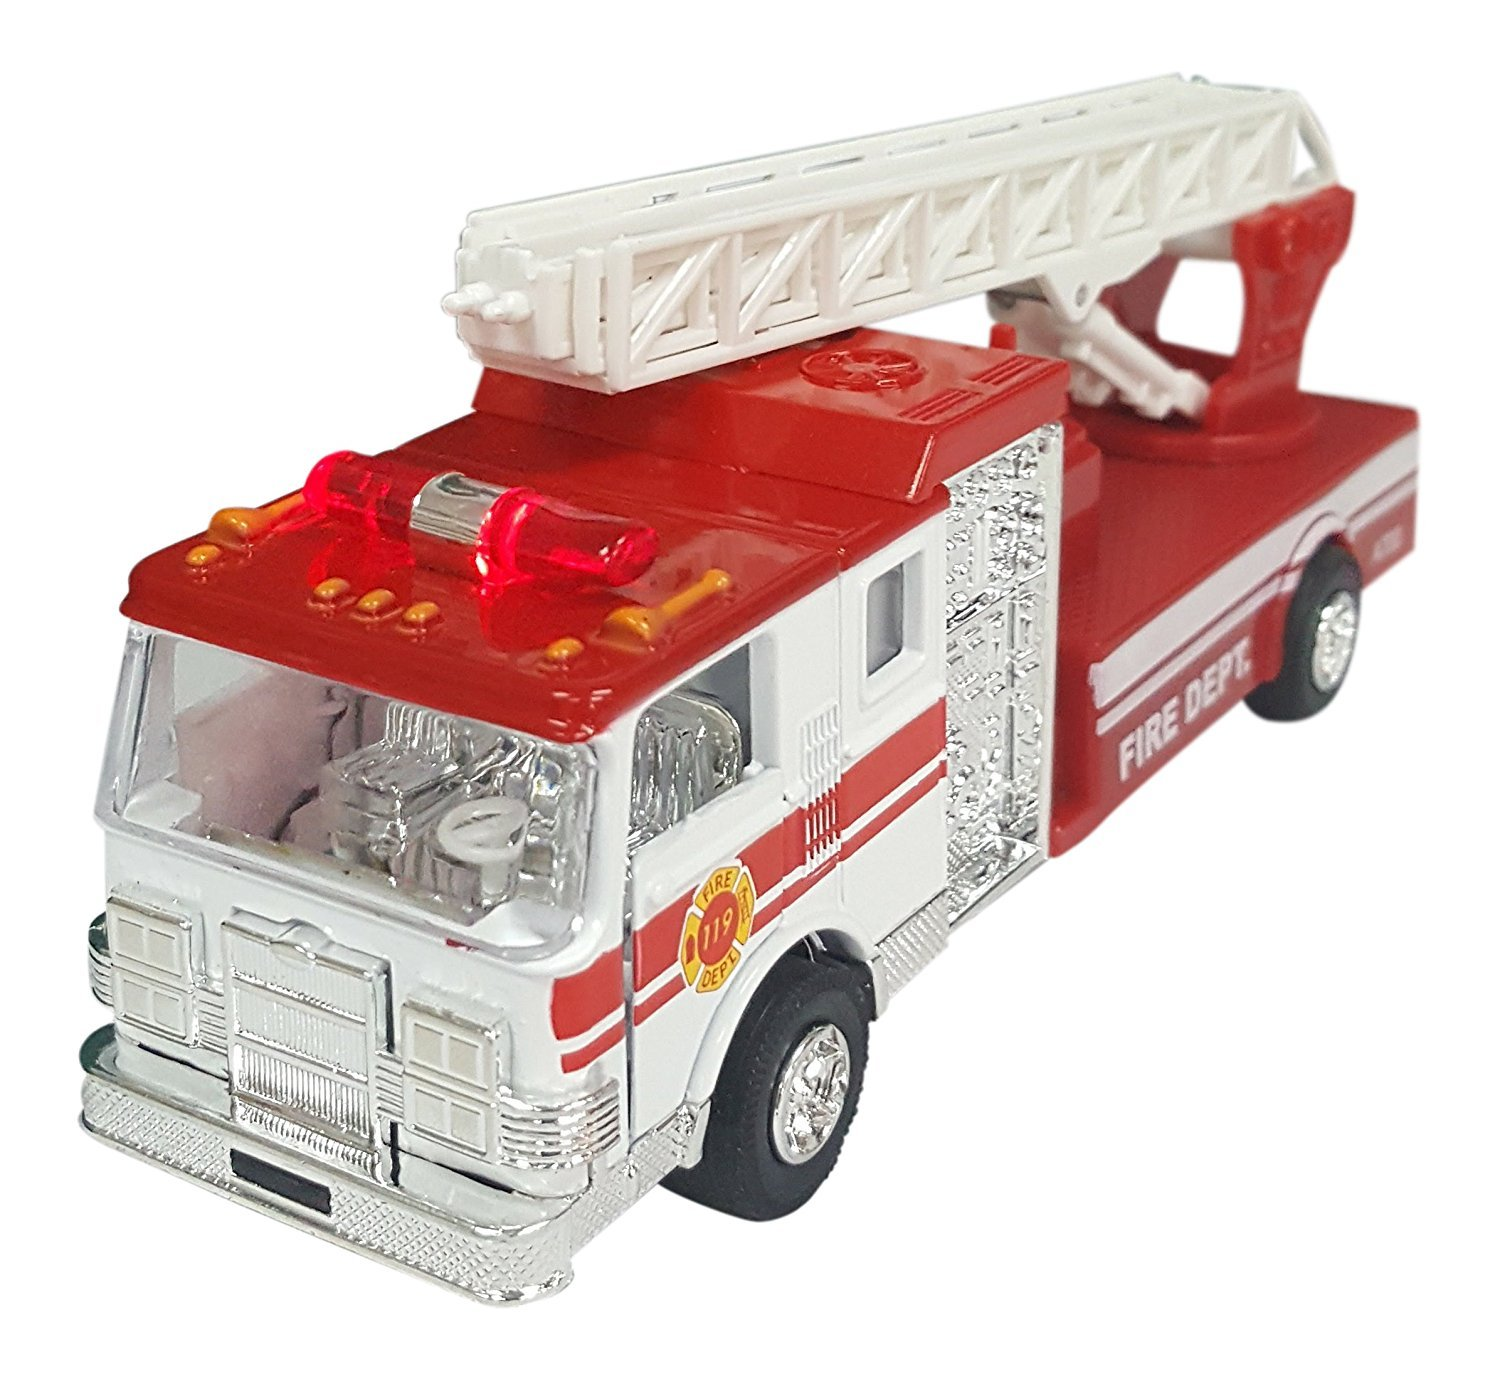 Style May Very YMCtoys Fire Engine Truck with Ladder 6.5 Die-Cast Metal Pull-Back Action